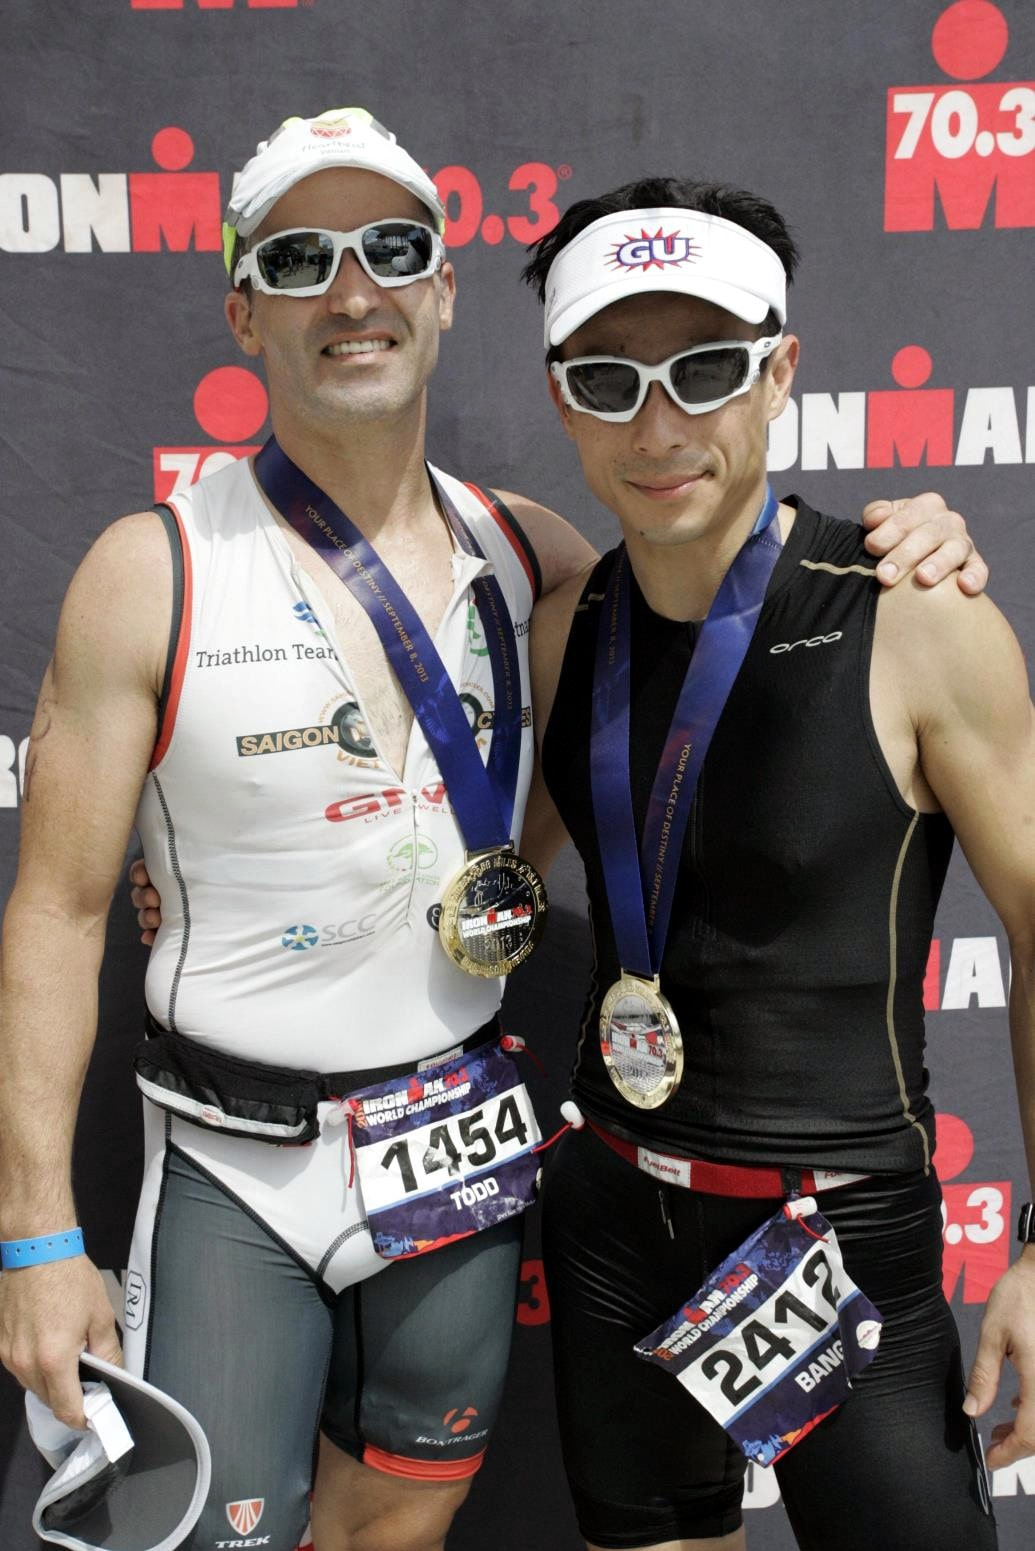 BISHCMC Athelete TODD in the Danang IRONMAN - Copy